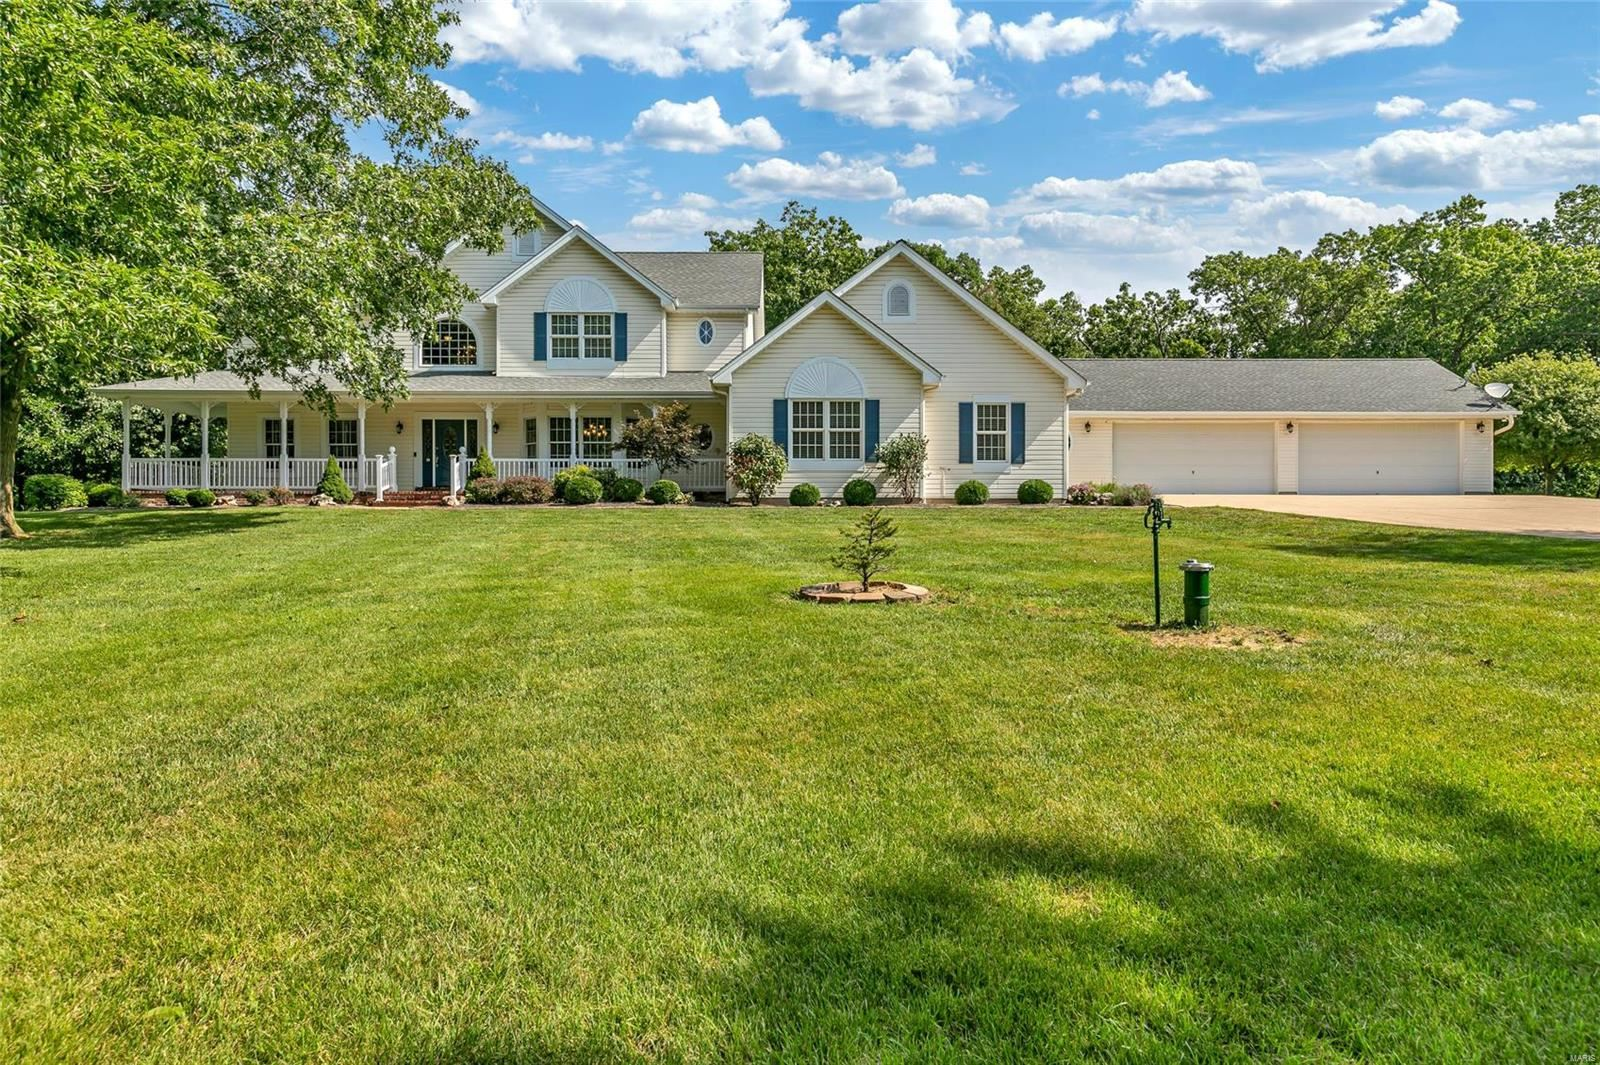 40 Steed Court, Foristell, MO 63348 - MLS#: 21057115